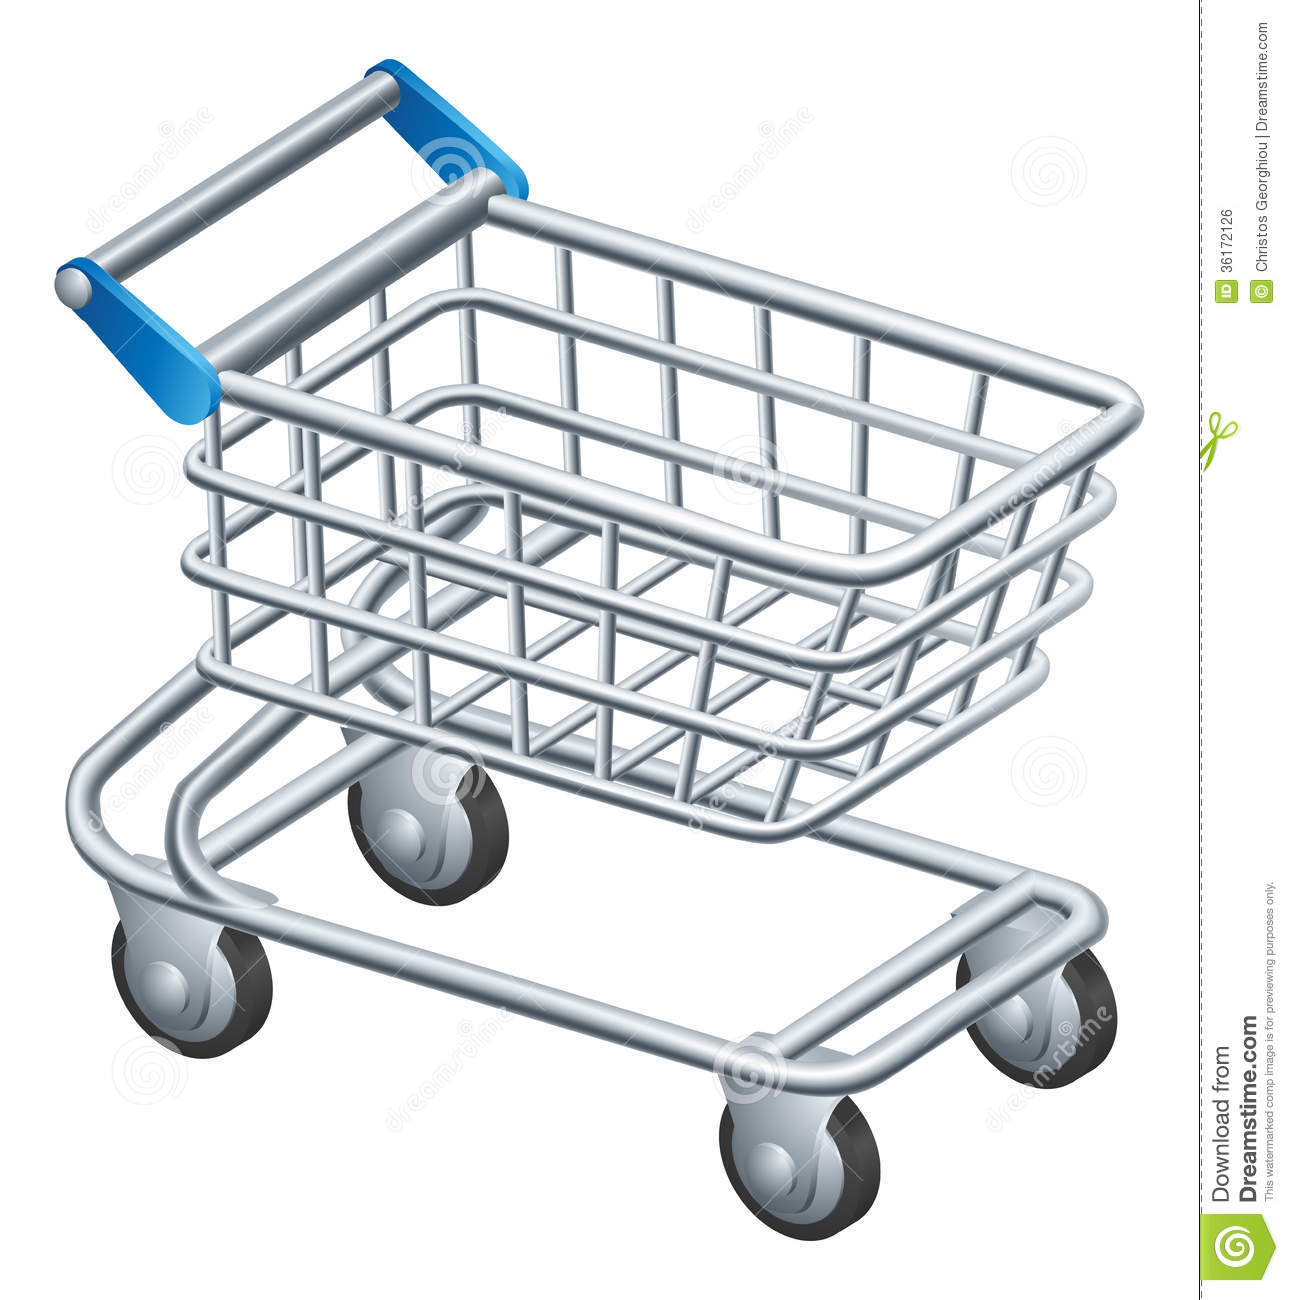 shopping trolley dating Rosie mcdonagh, of roman way, folkestone, initially denied walking off with nearly £400 worth of shopping but was found guilty at an earlier trial today (november 8), folkestone magistrates' court heard that on march 17, mcdonagh and another woman were caught on cctv pushing a trolley around b&m bargains in canterbury.